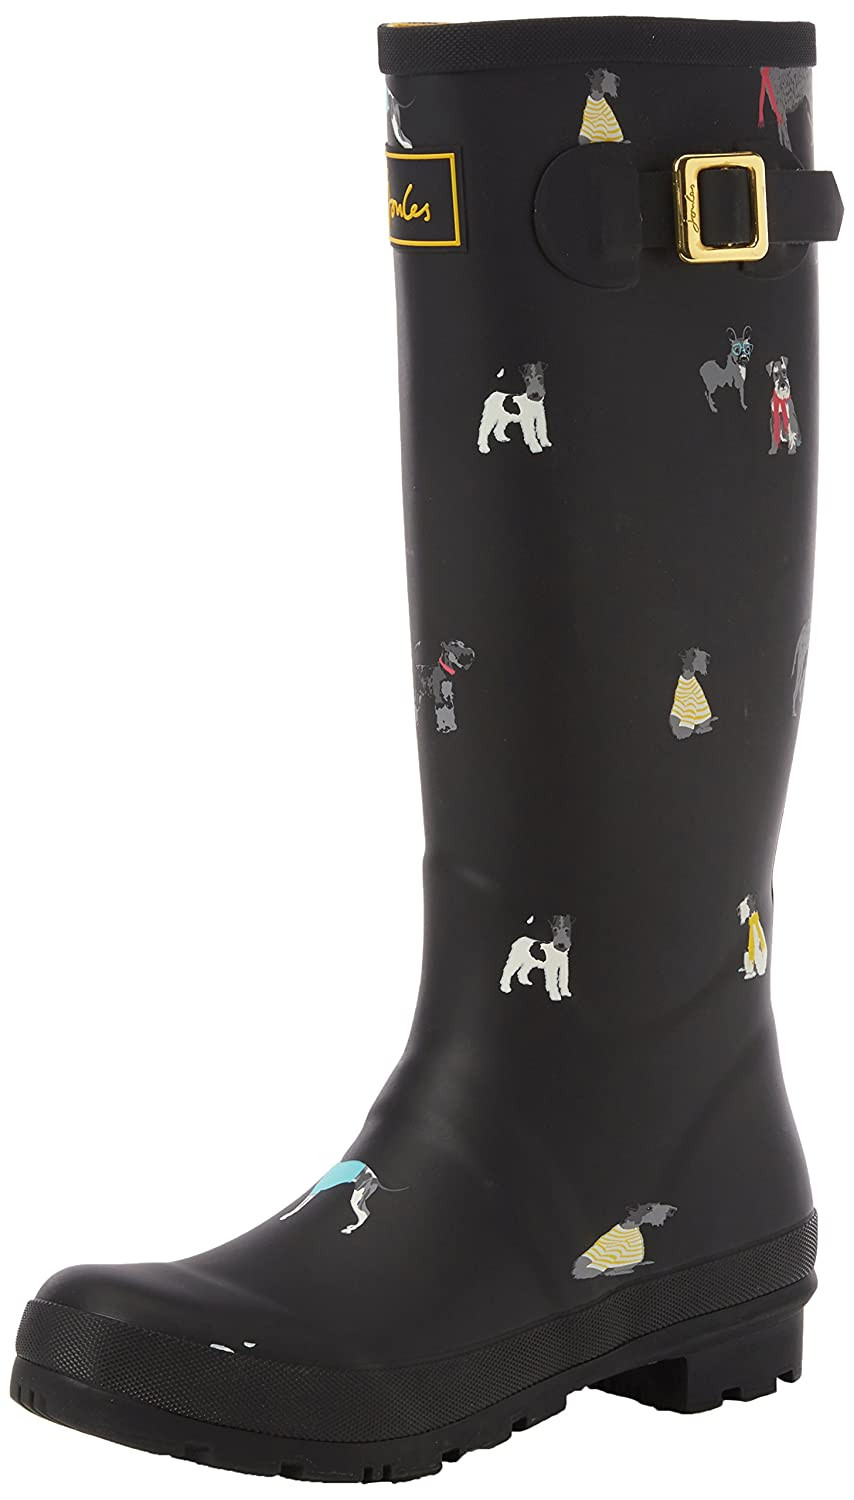 Joules Women's Welly Print Rain Boot B06XGLY22S 10 B(M) US|Black Chic Dogs